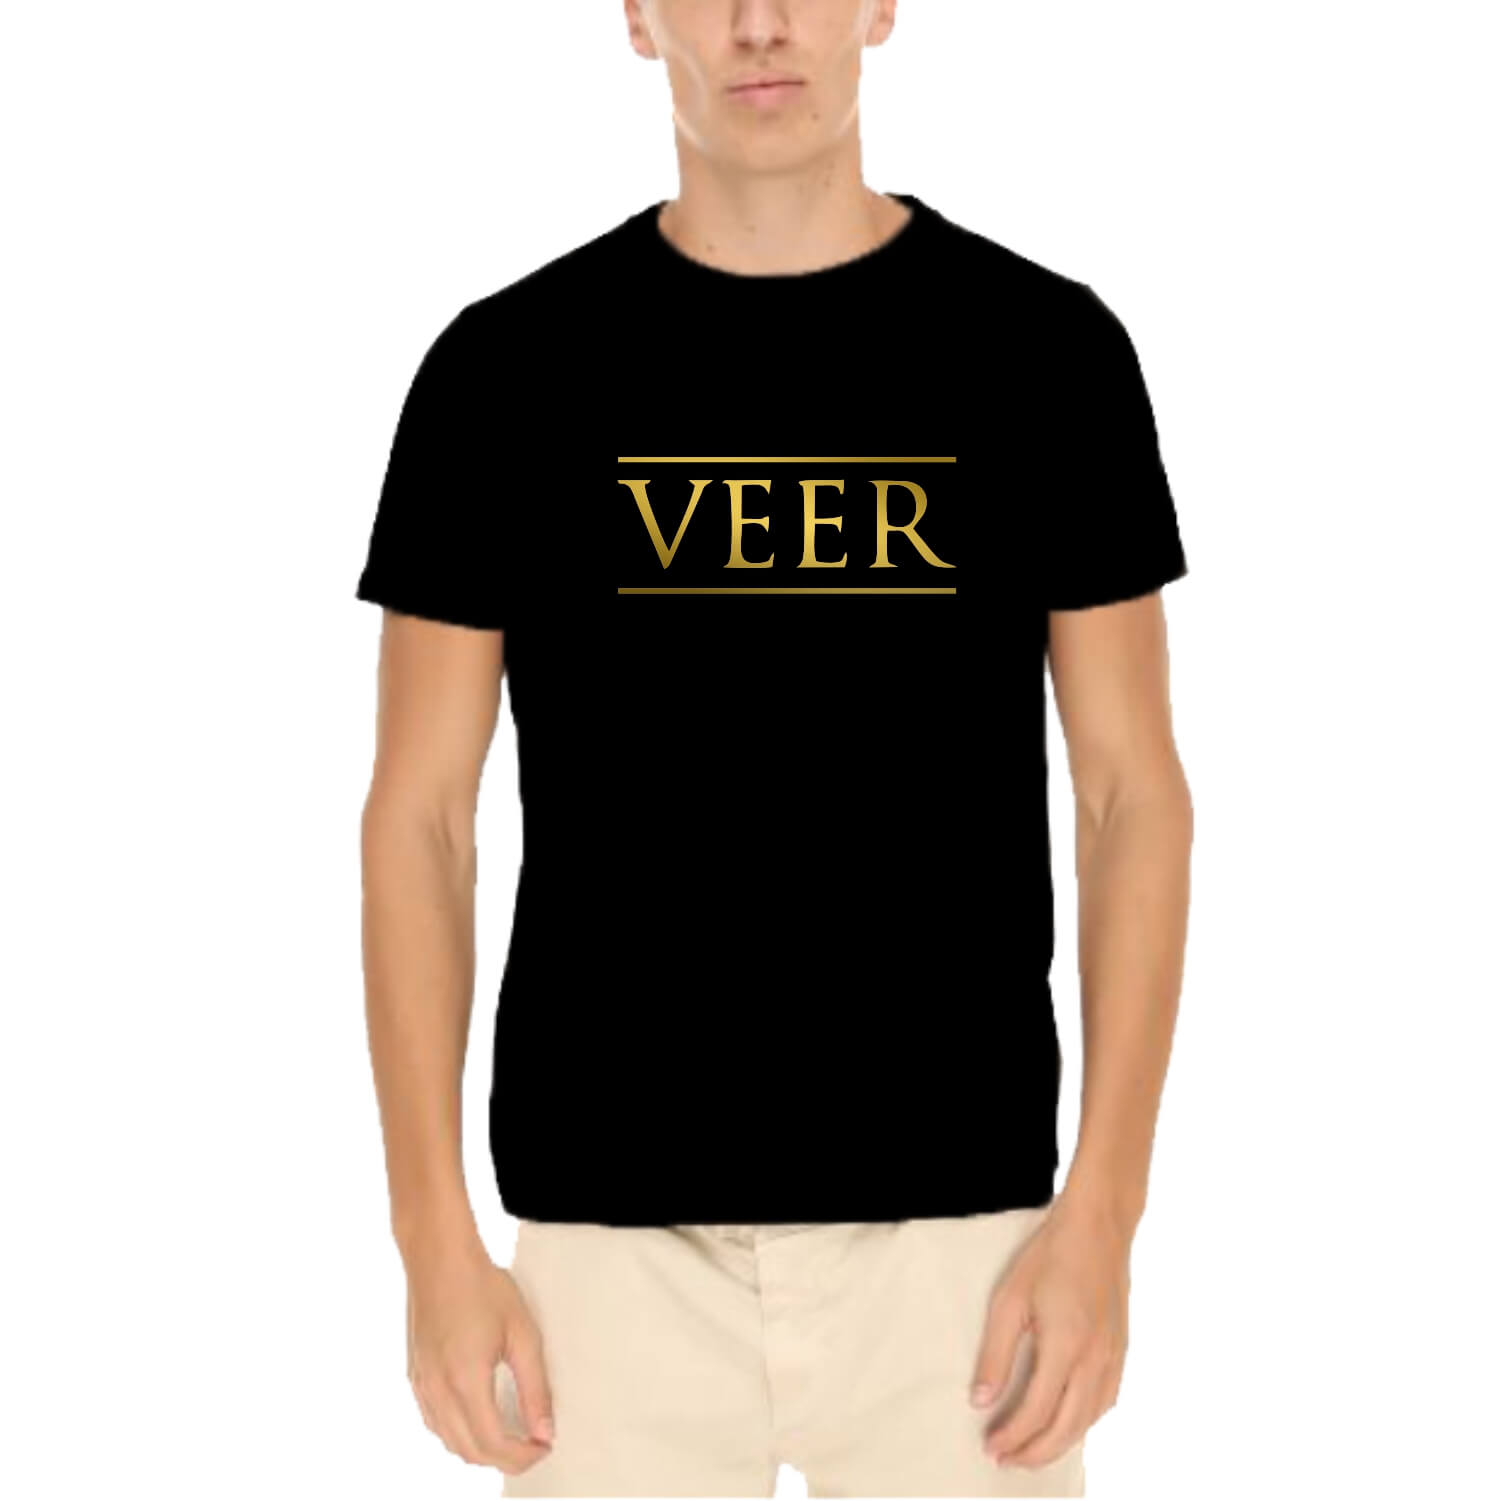 2019 best sell 100% quality quarantee reasonably priced Veer Zara Couple T-shirt For Valentine Gifts | Giftsmate